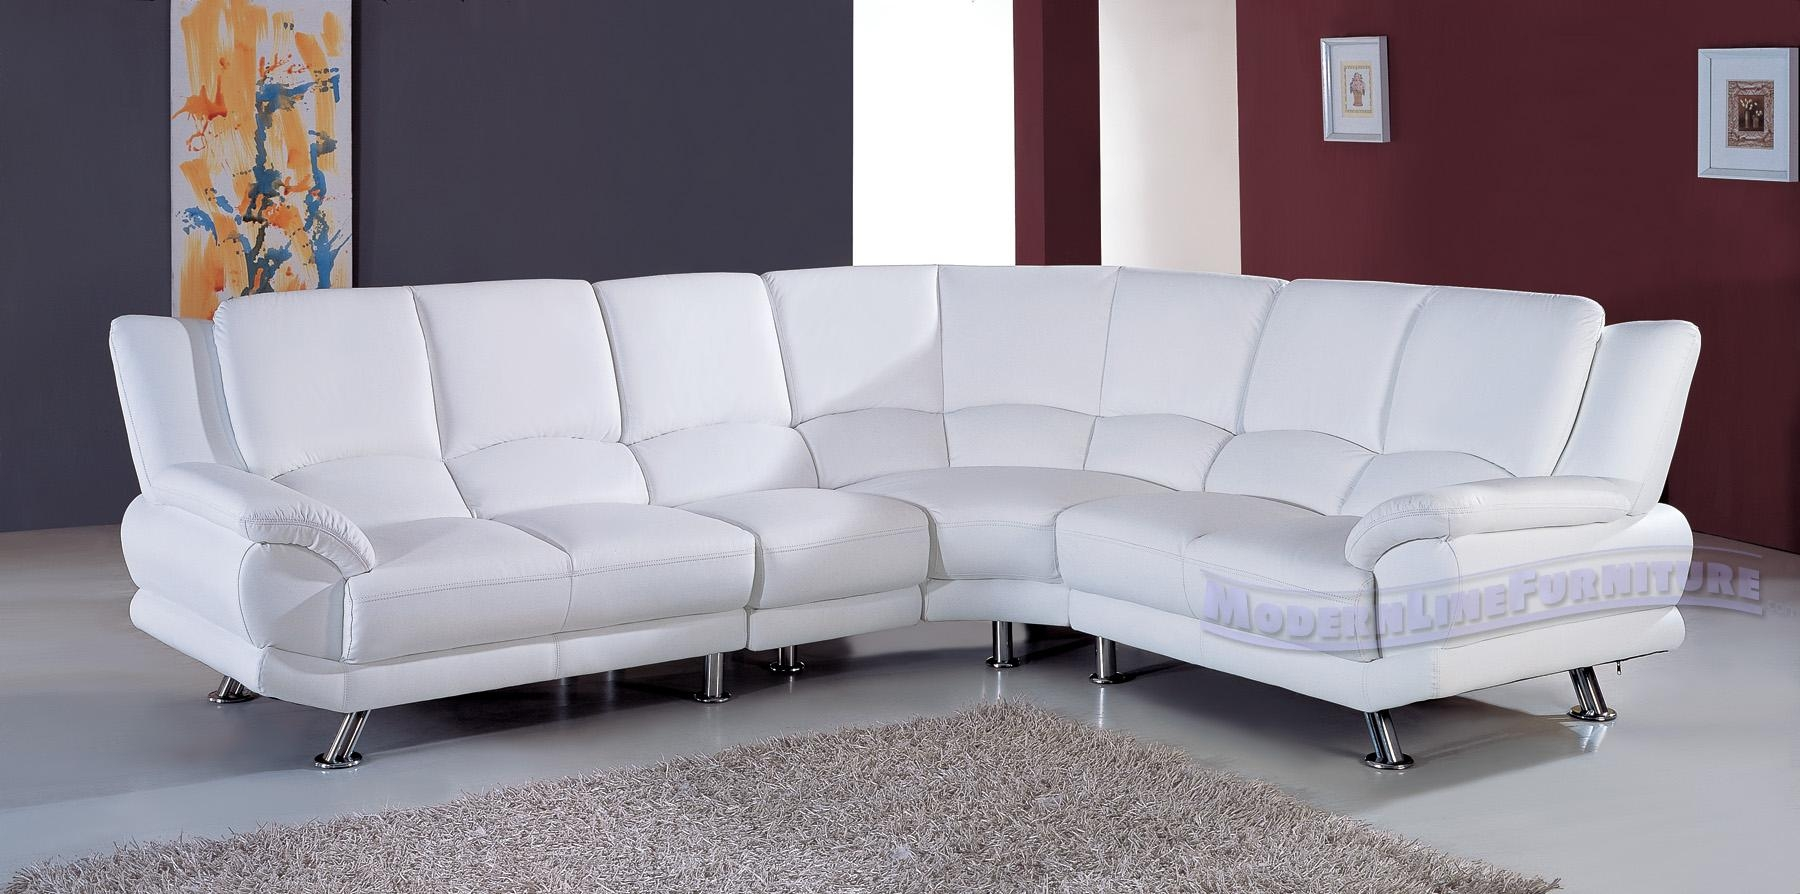 White Sectional Leather Sofa Modern And At In Elegant White Sofas Intended For White Sectional Sofa For Sale (View 4 of 21)